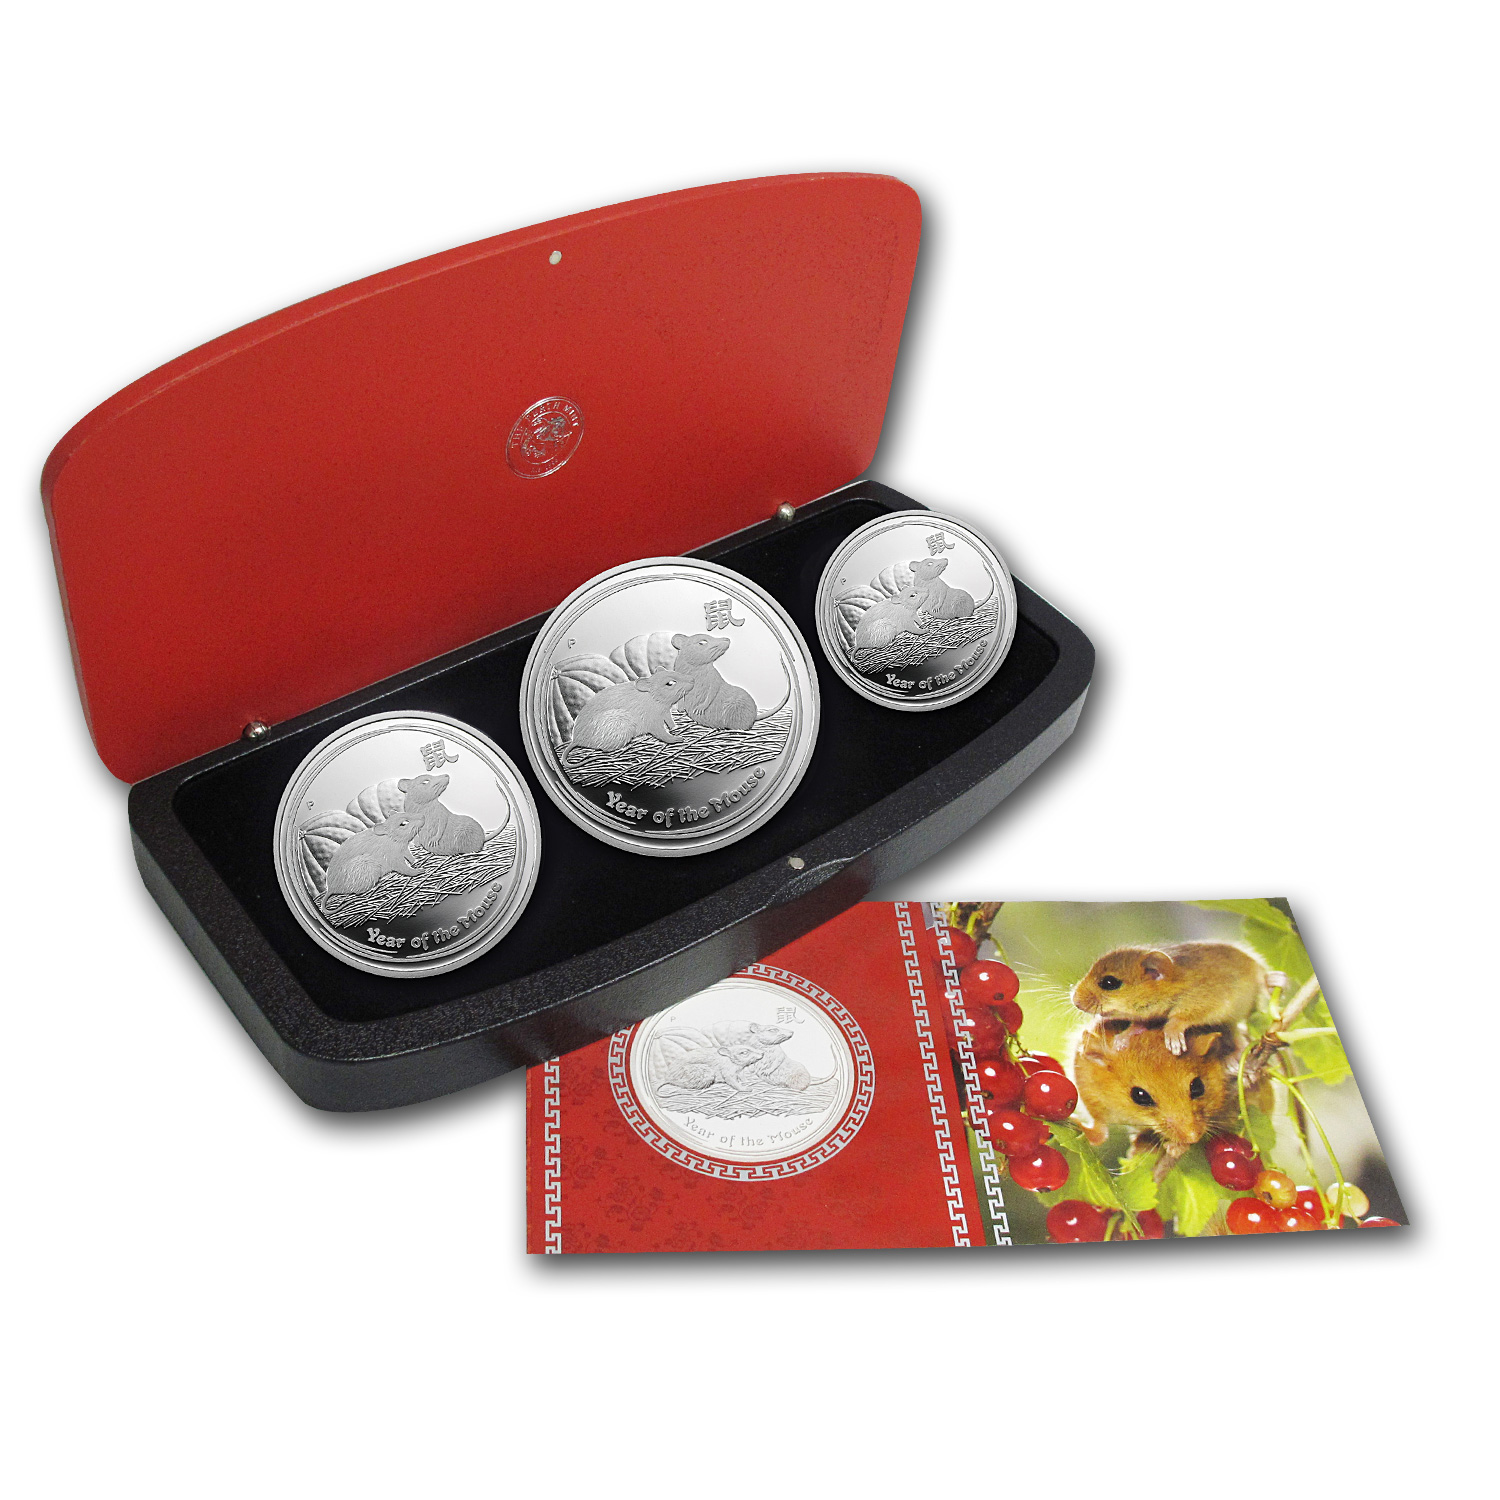 2008 Year of the Mouse - Silver 3-Coin Proof Set - (Series II)